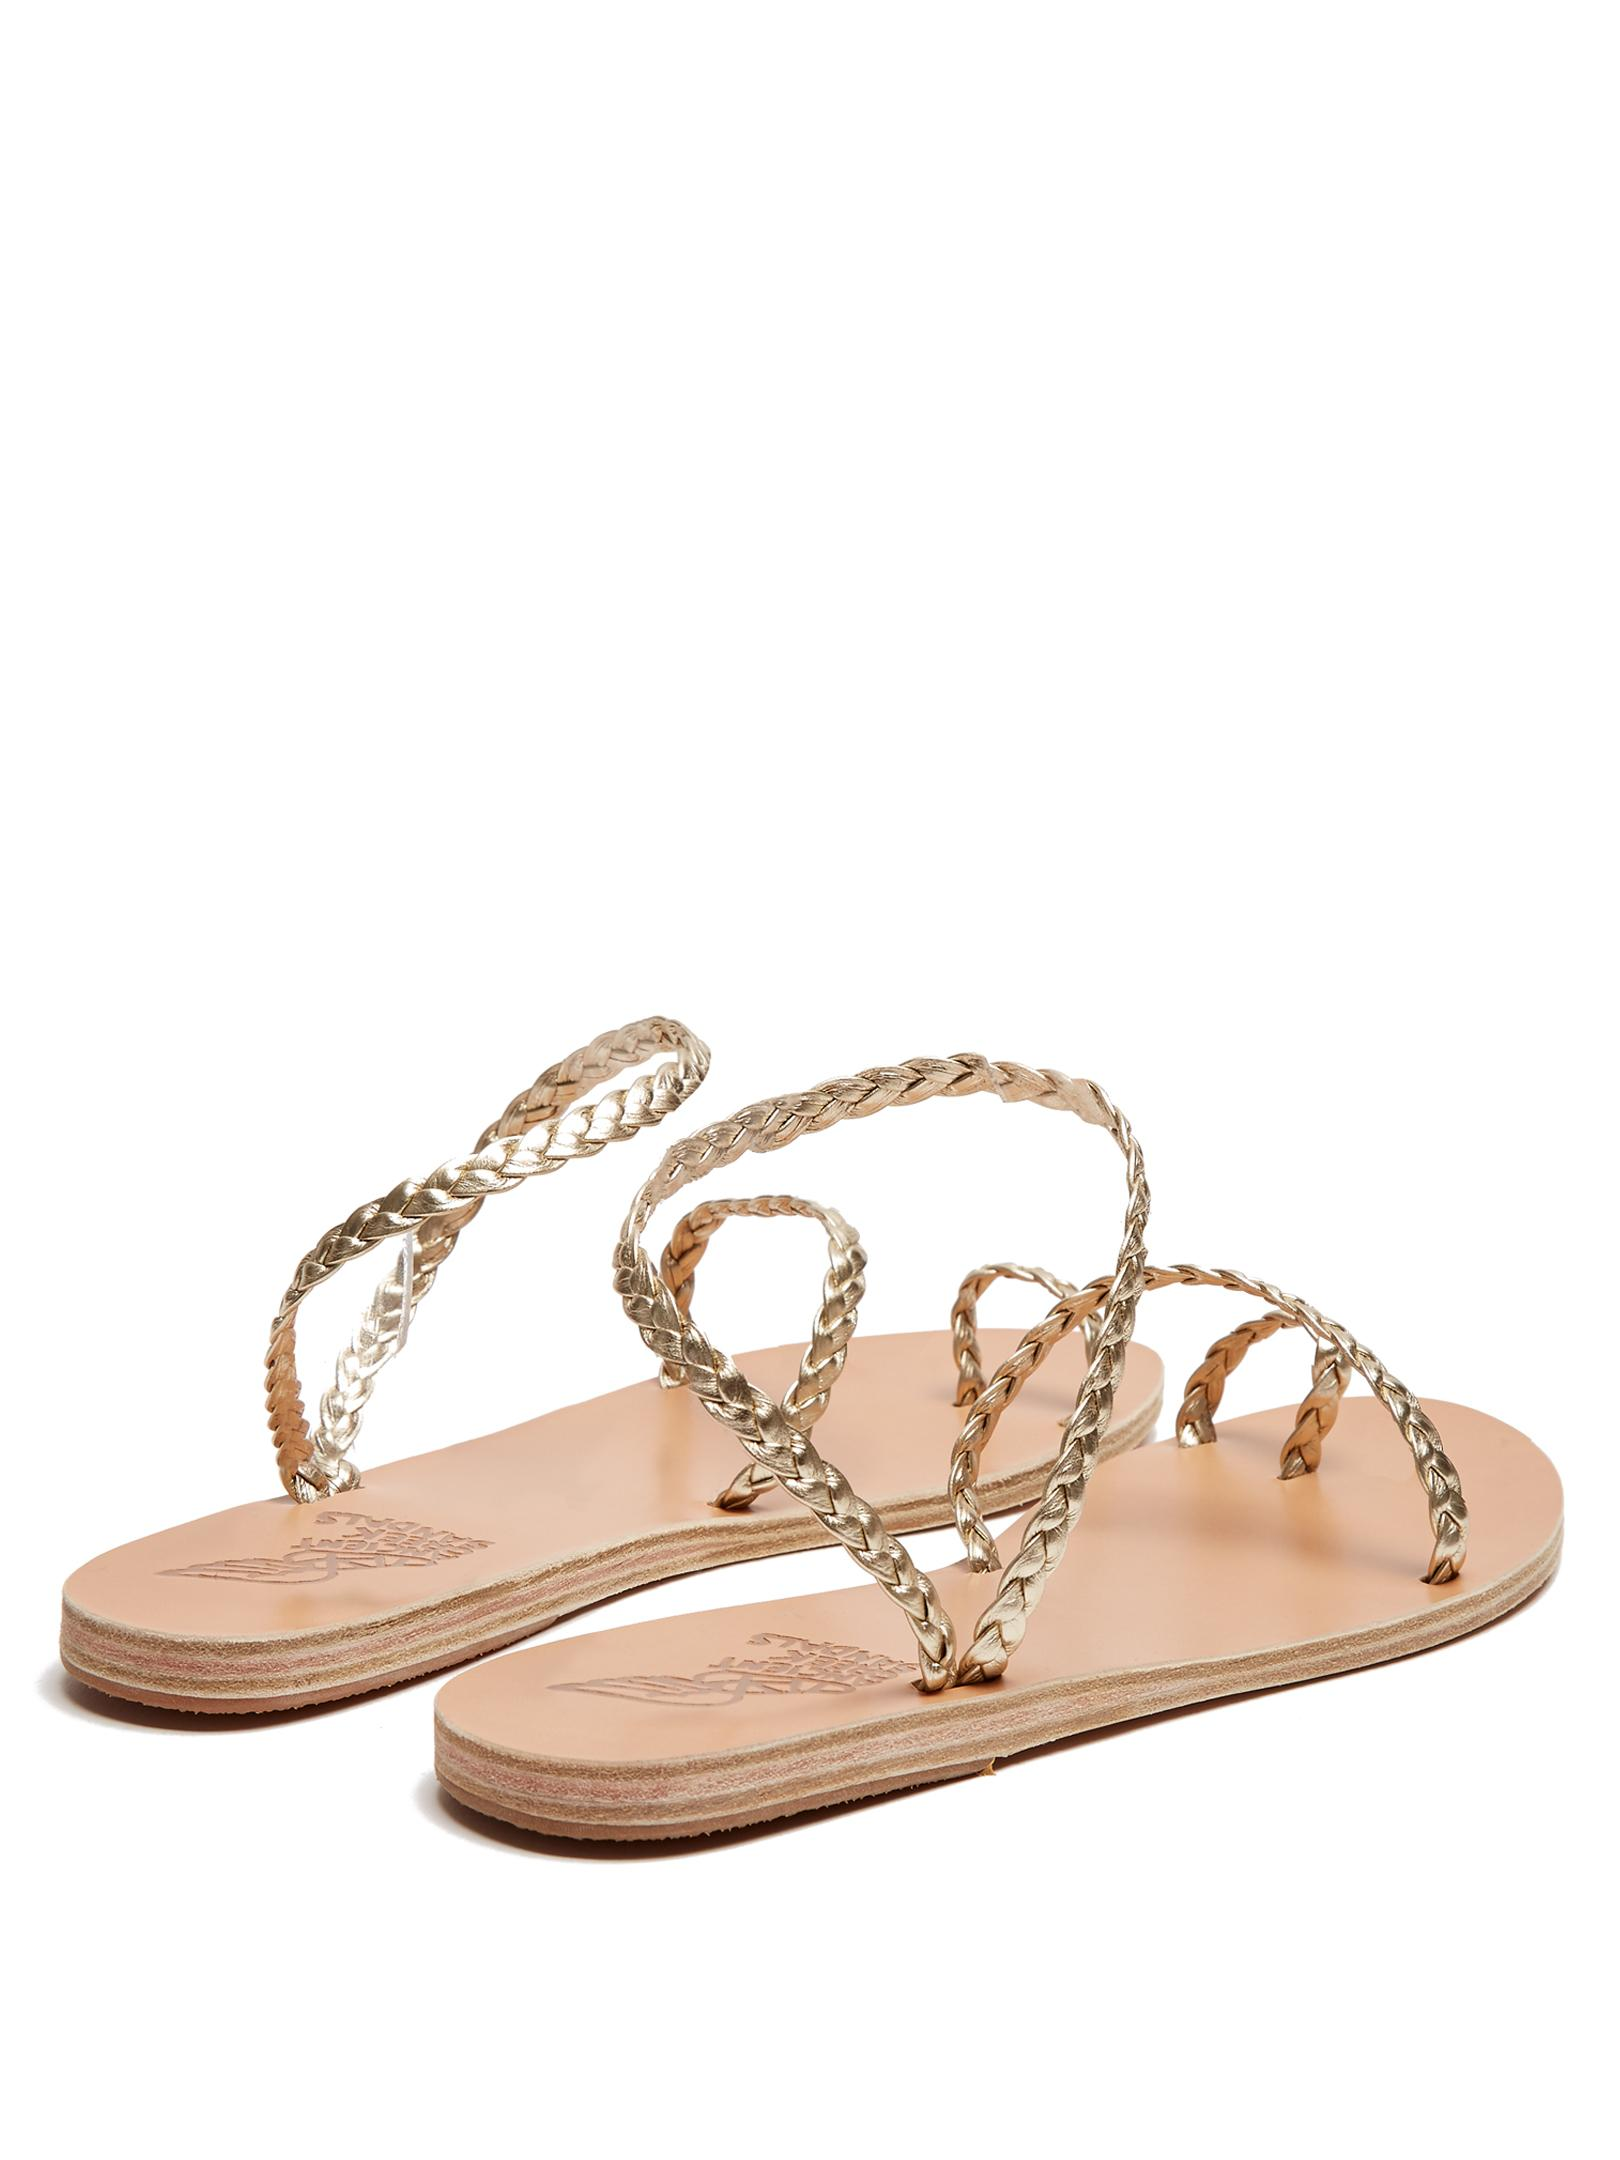 Lyst Ancient Greek Sandals Eletheria Plaited Leather